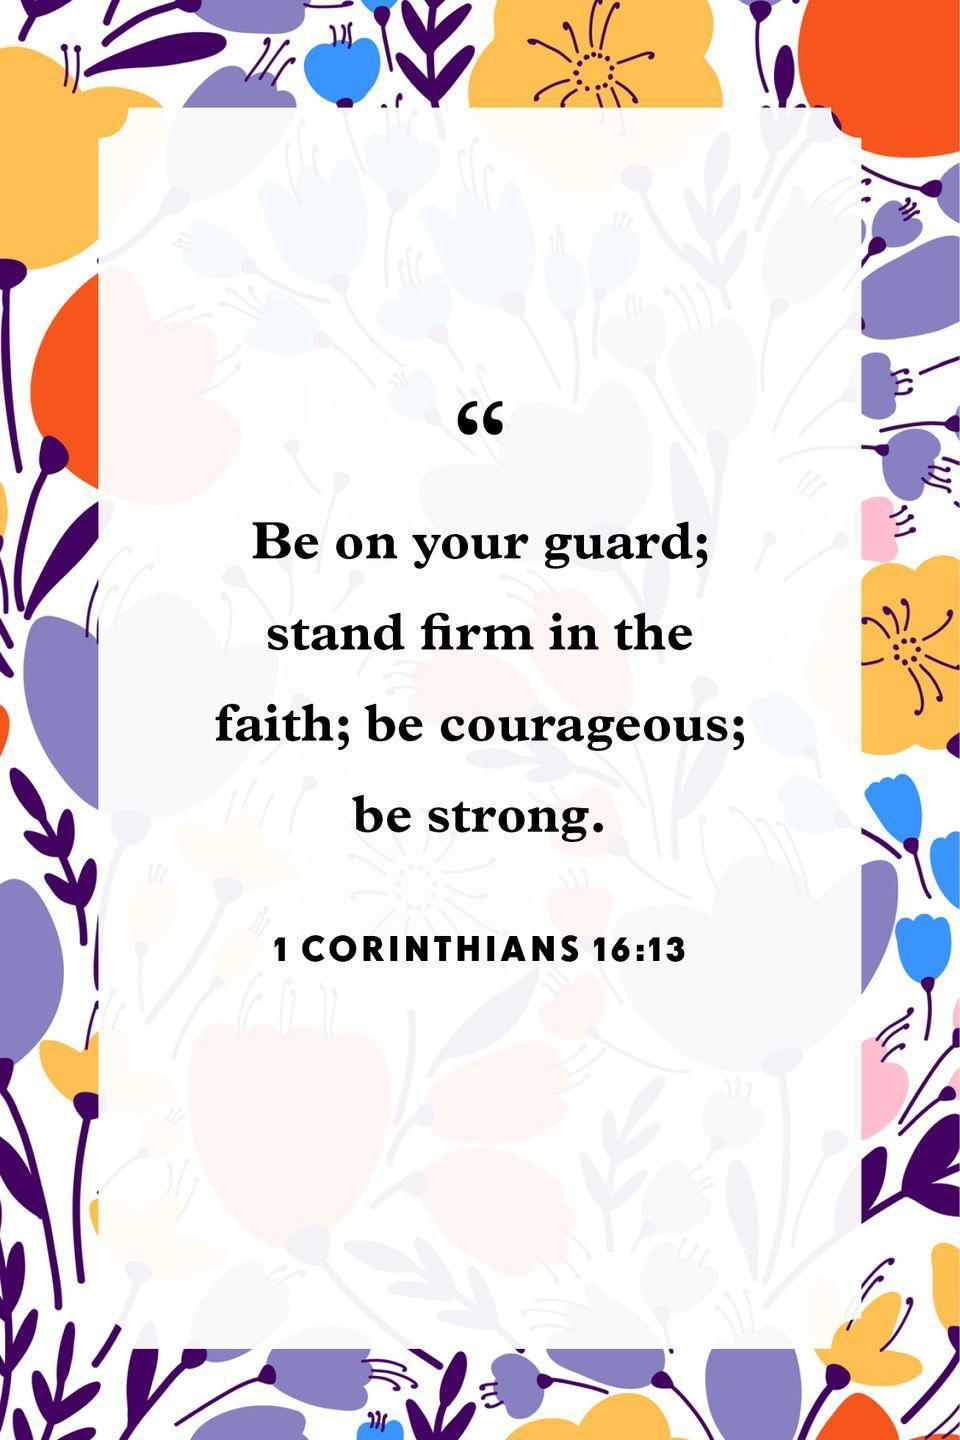 "<p>""Be on your guard; stand firm in the faith; be courageous; be strong.""</p>"